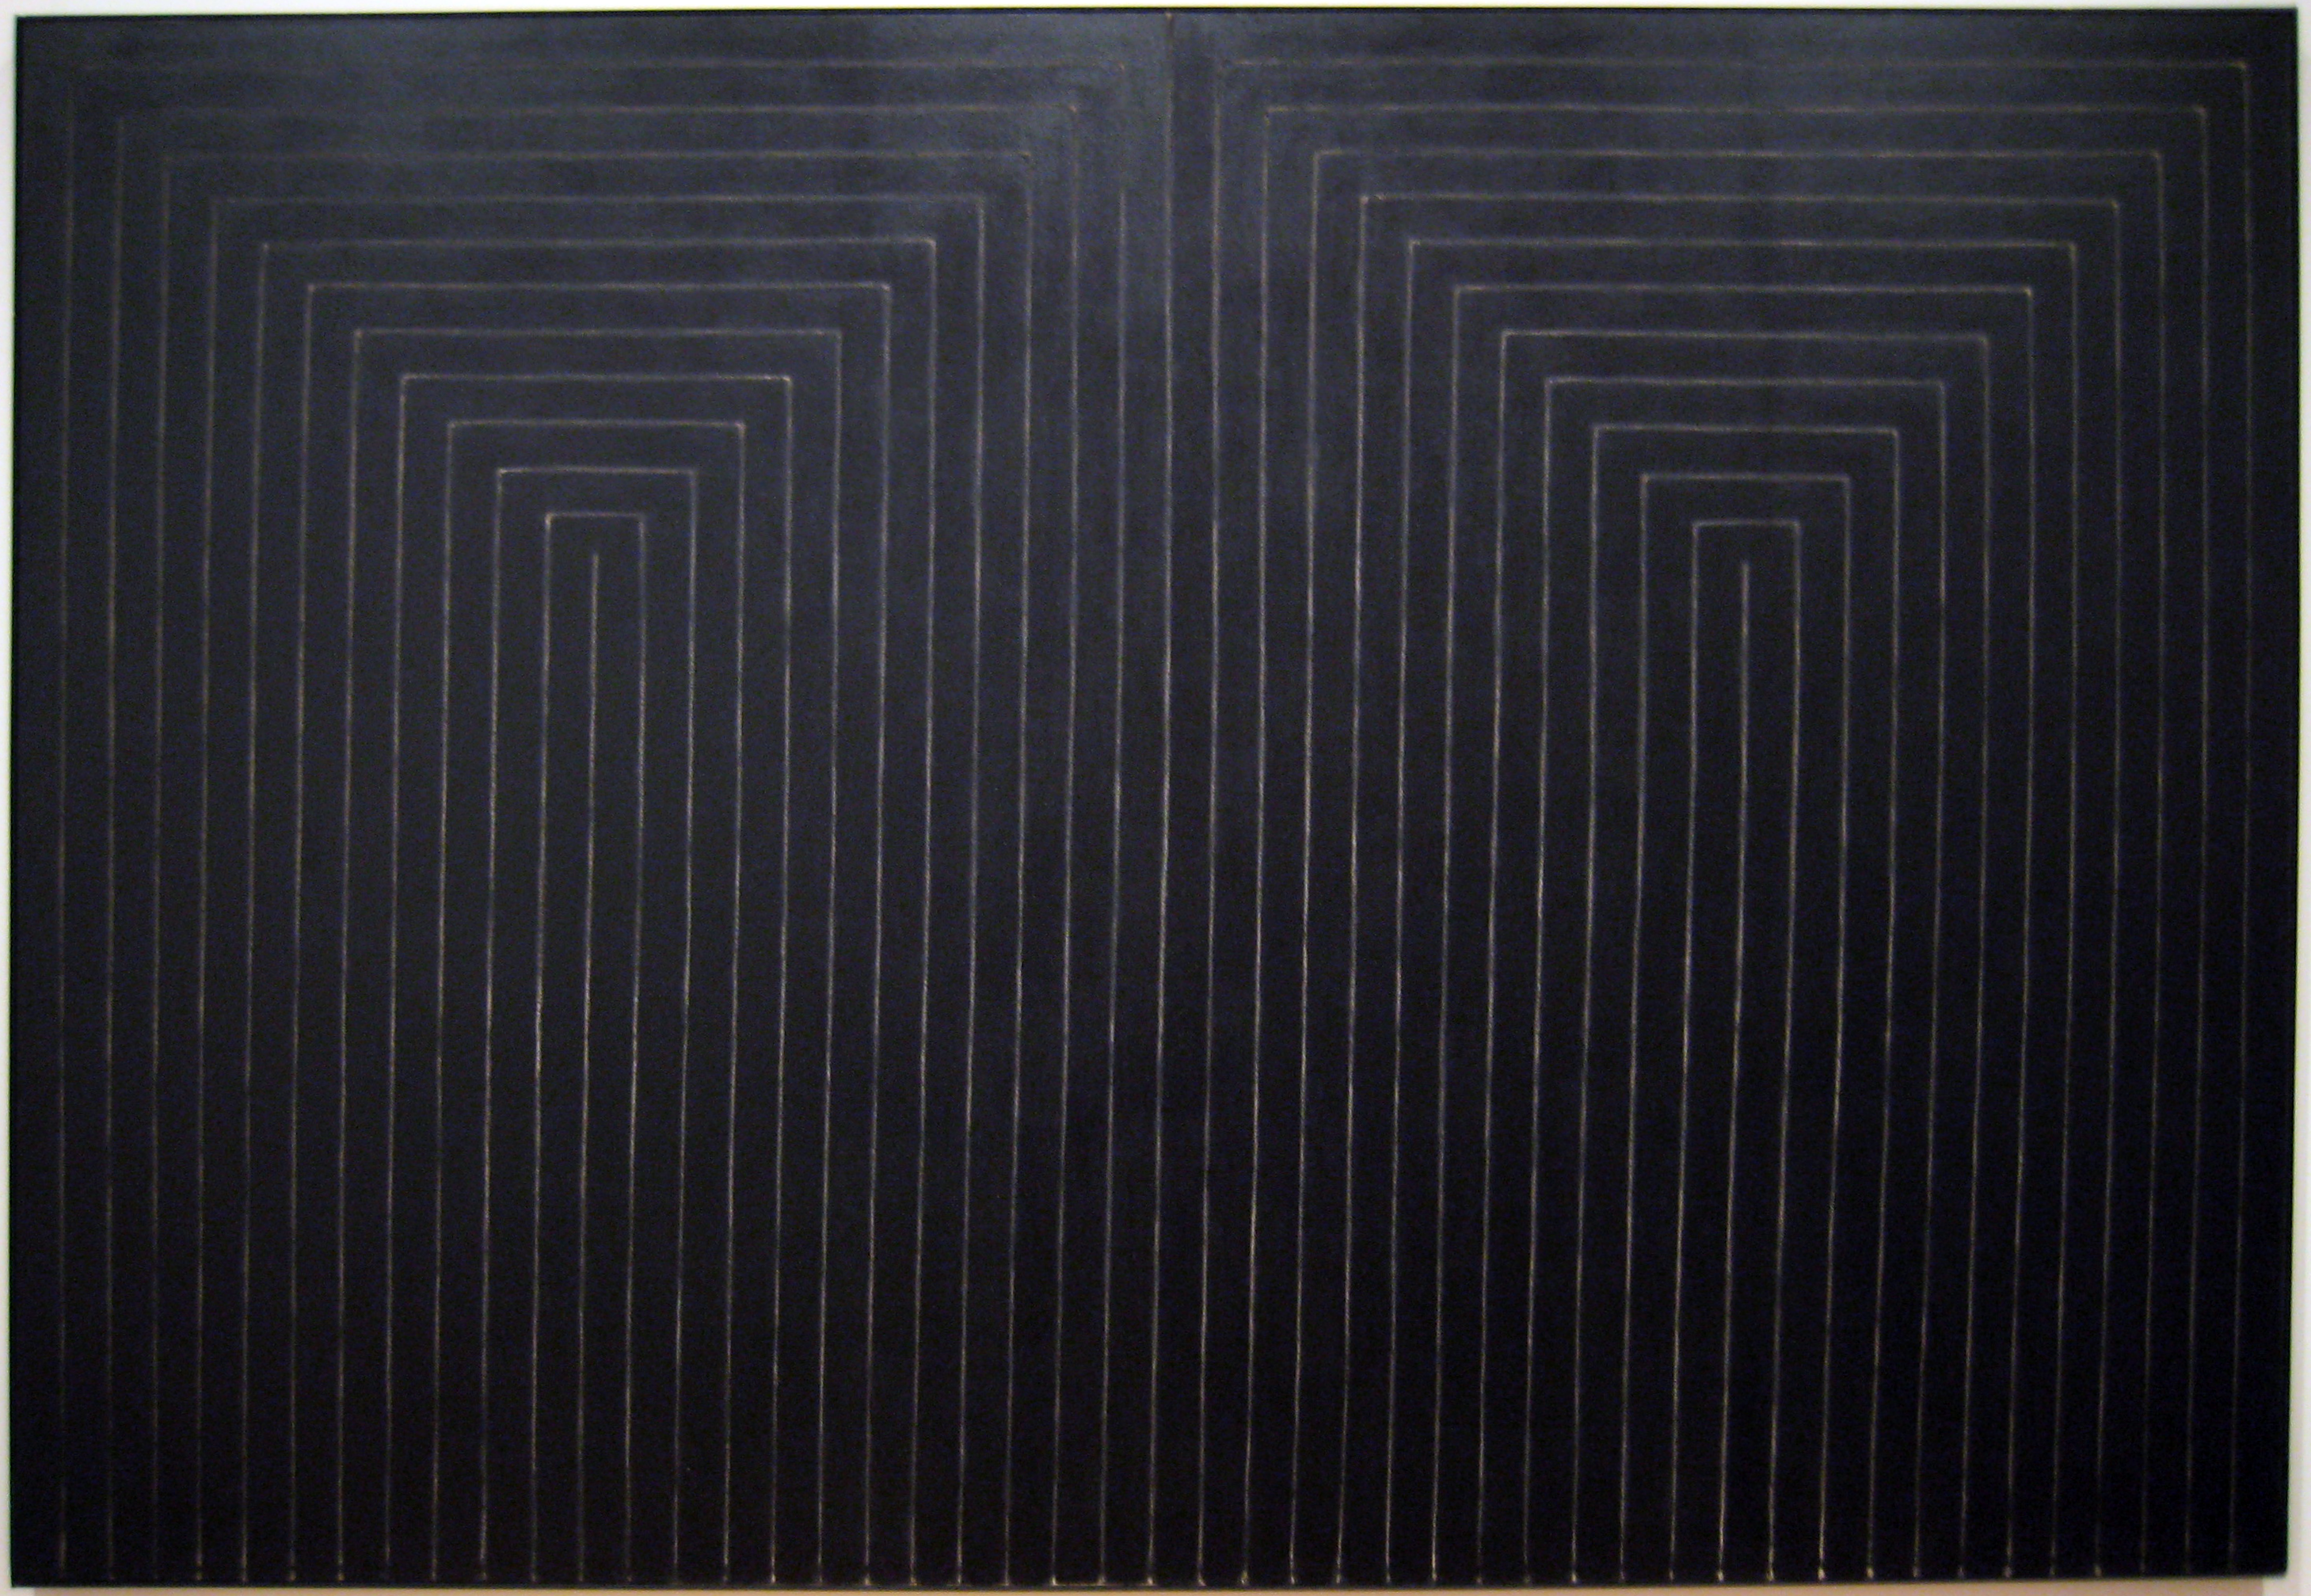 Frank Stella: The Marriage of Reason and Squalor, II (1959)